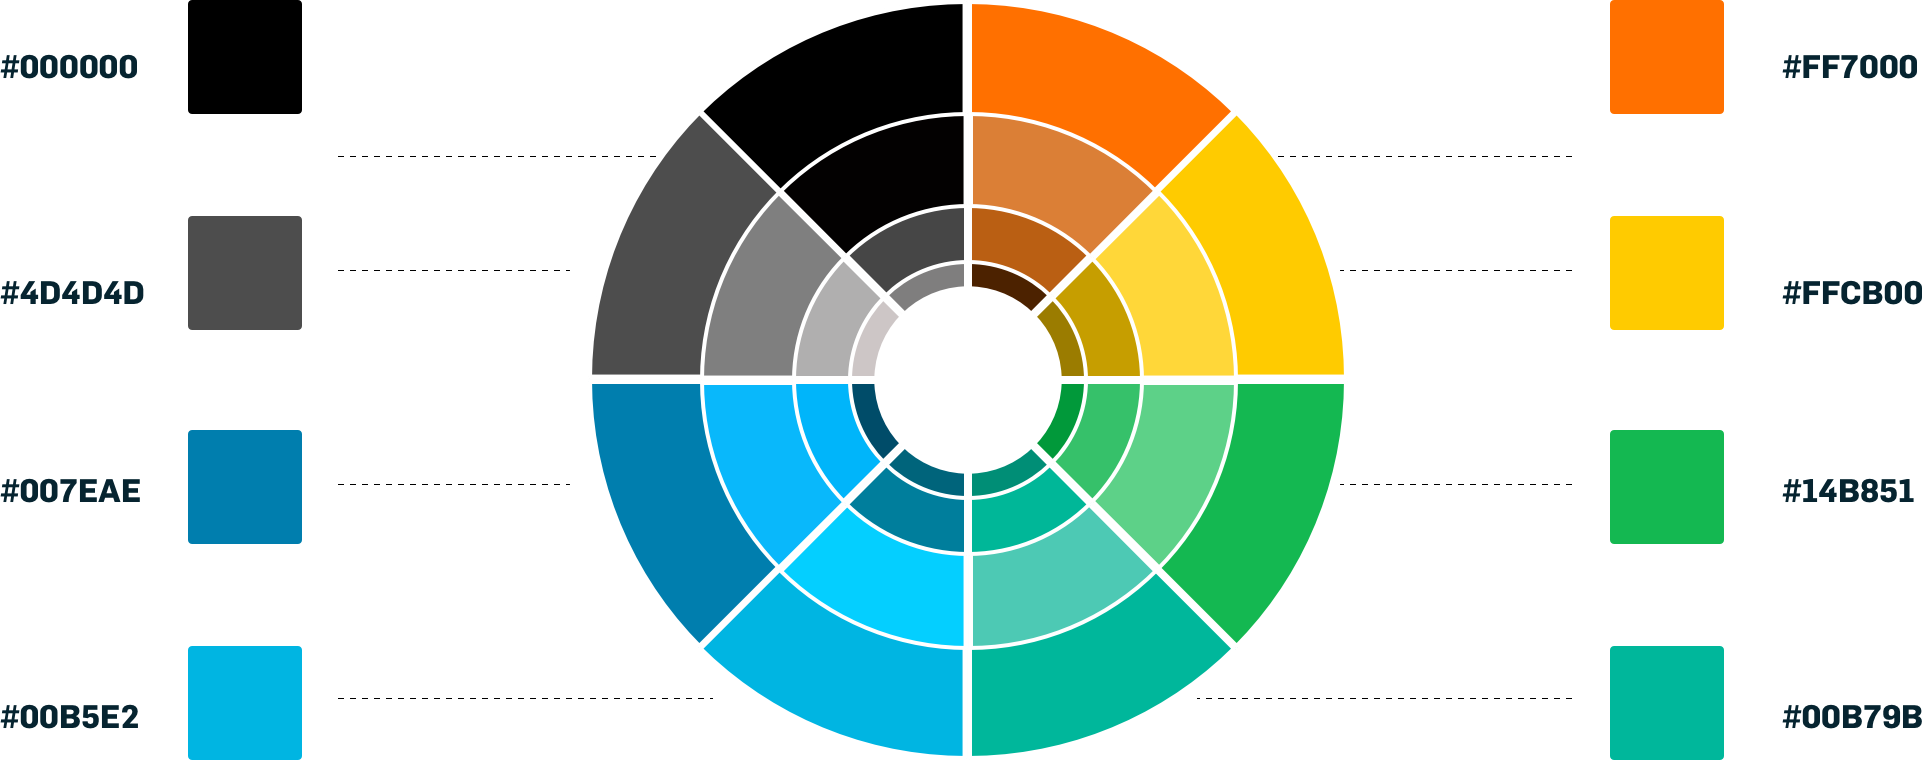 color-wheel-swatches-desktop.png